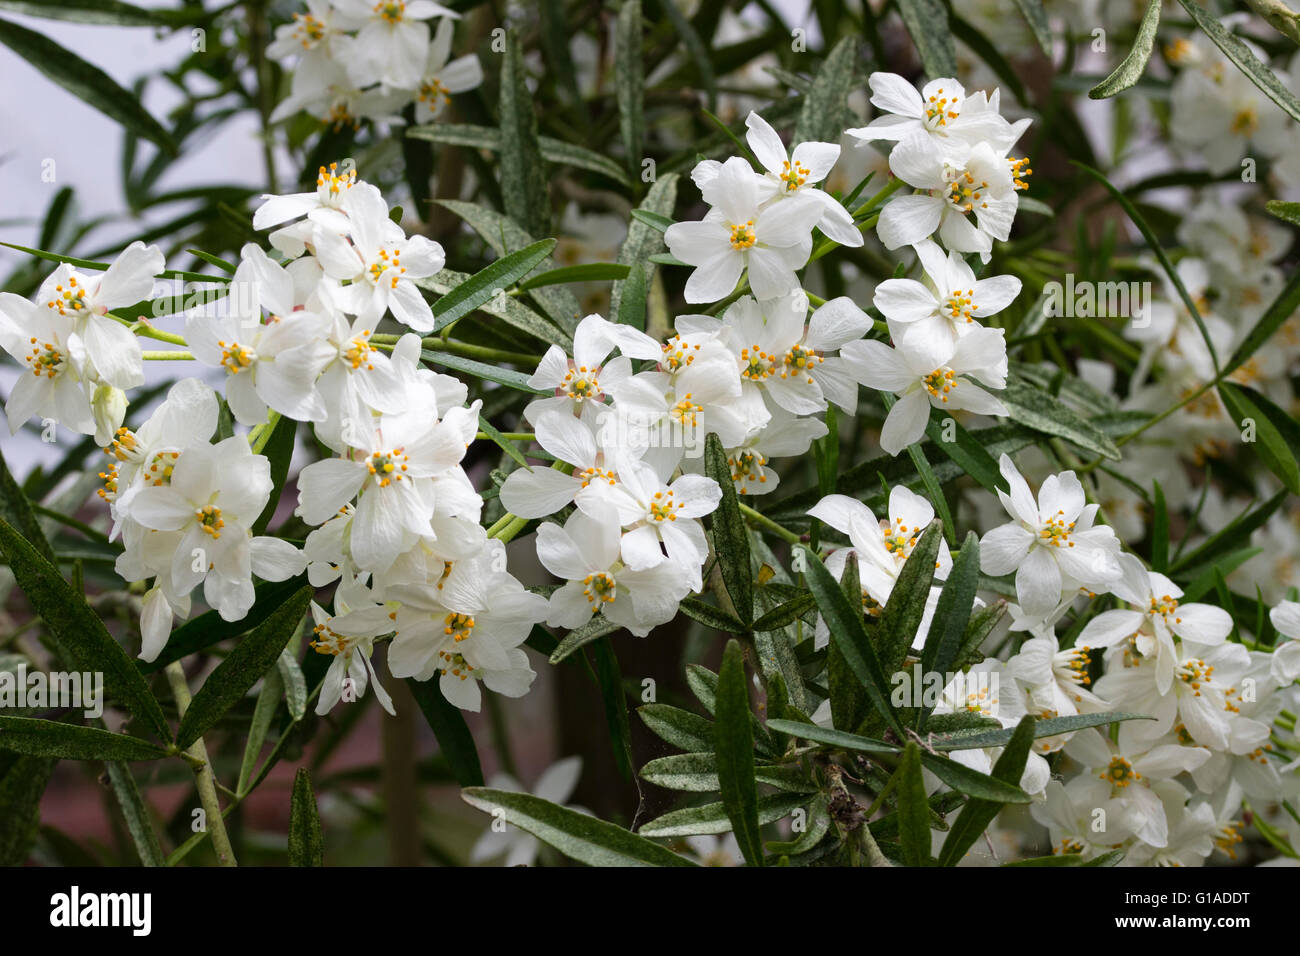 White smelly flowers gallery flower decoration ideas fine small white scented flowers component ball gown wedding white smelly flowers gallery flower decoration ideas mightylinksfo